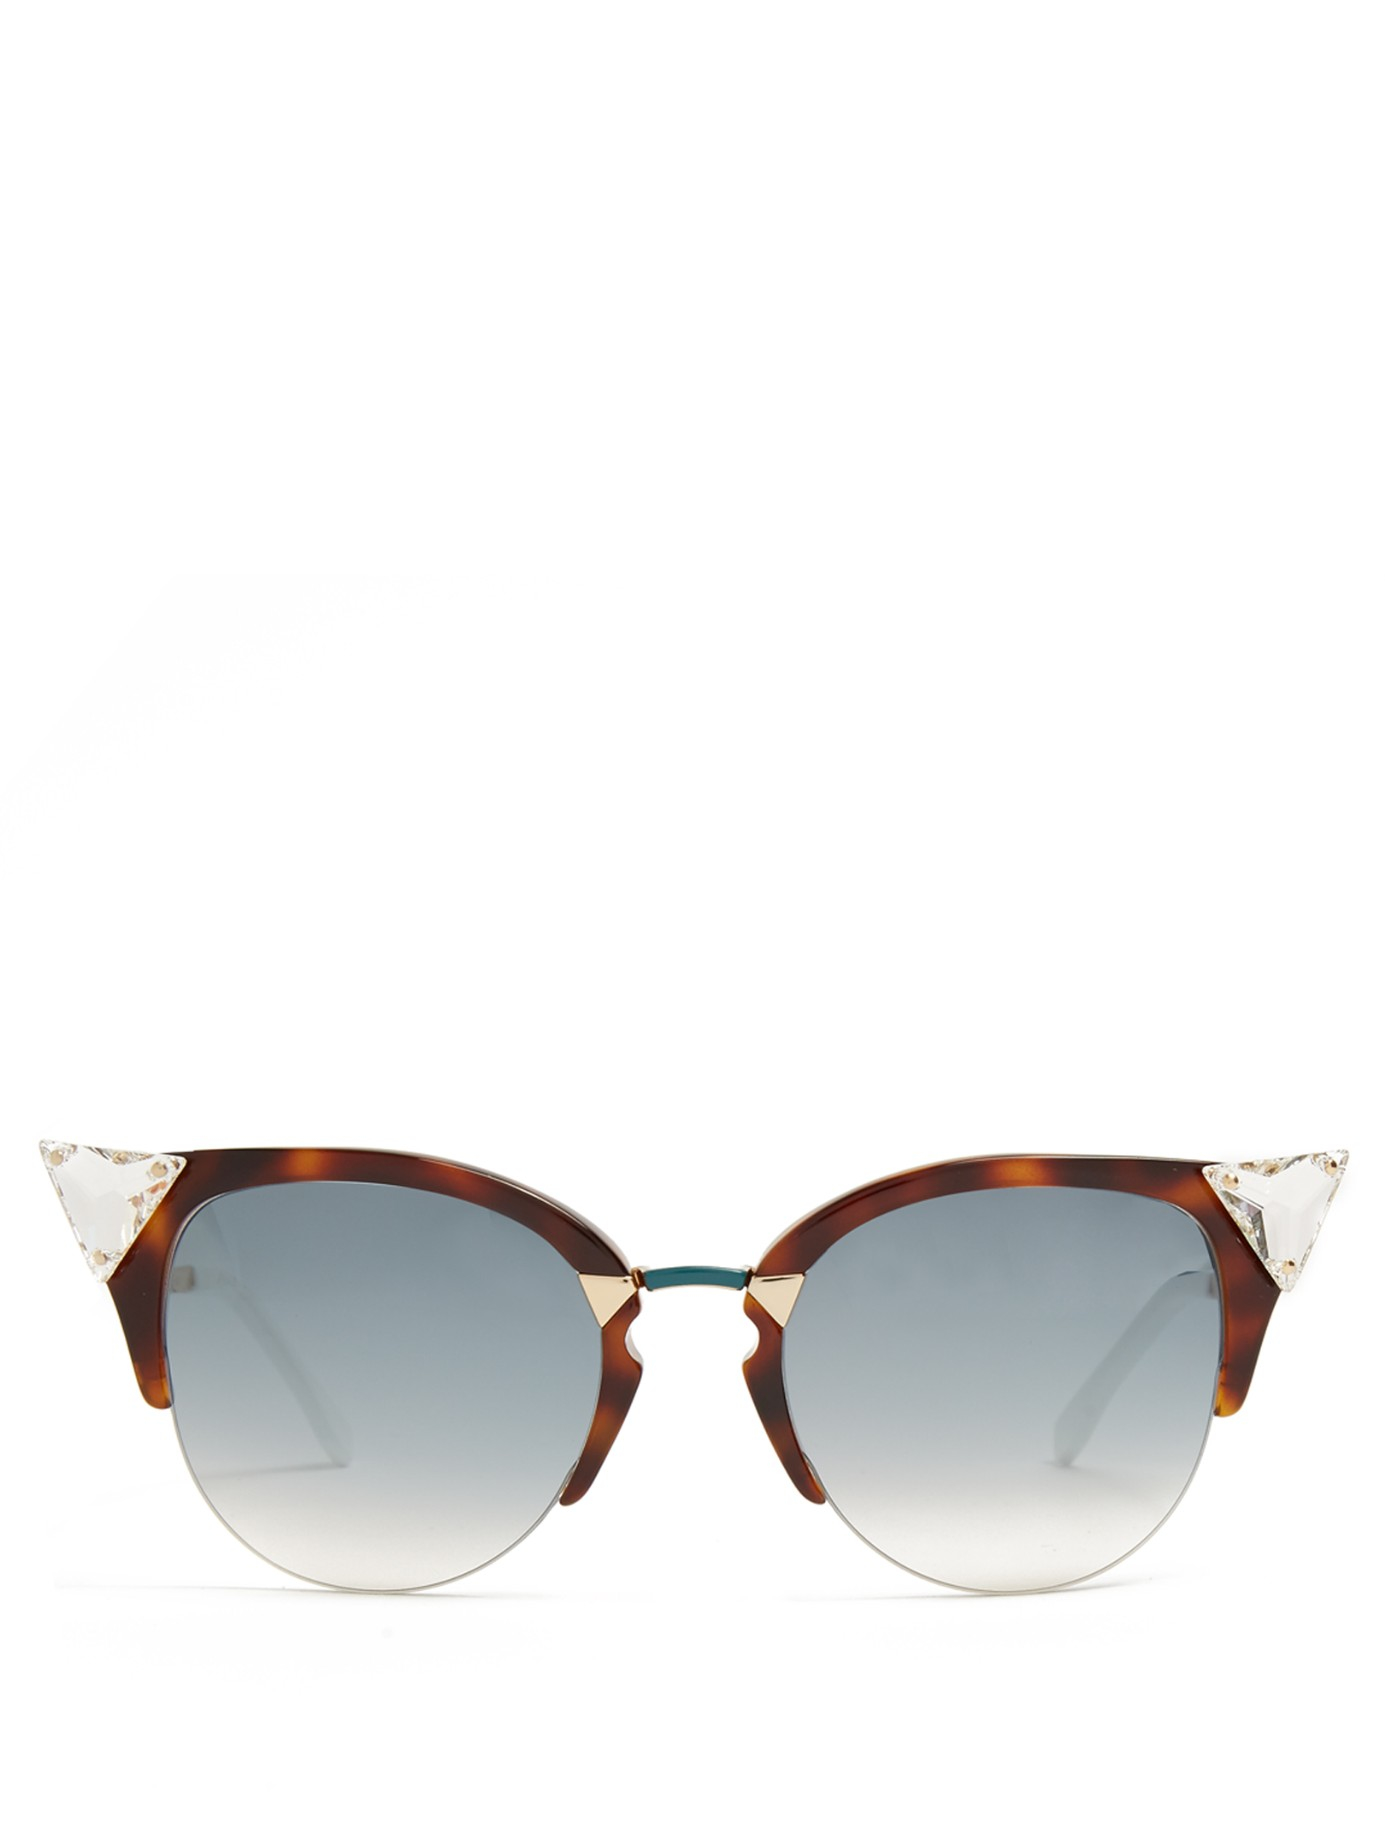 Half Frame Glasses Brown : Fendi Cat-eye Half-frame Sunglasses in Brown Lyst